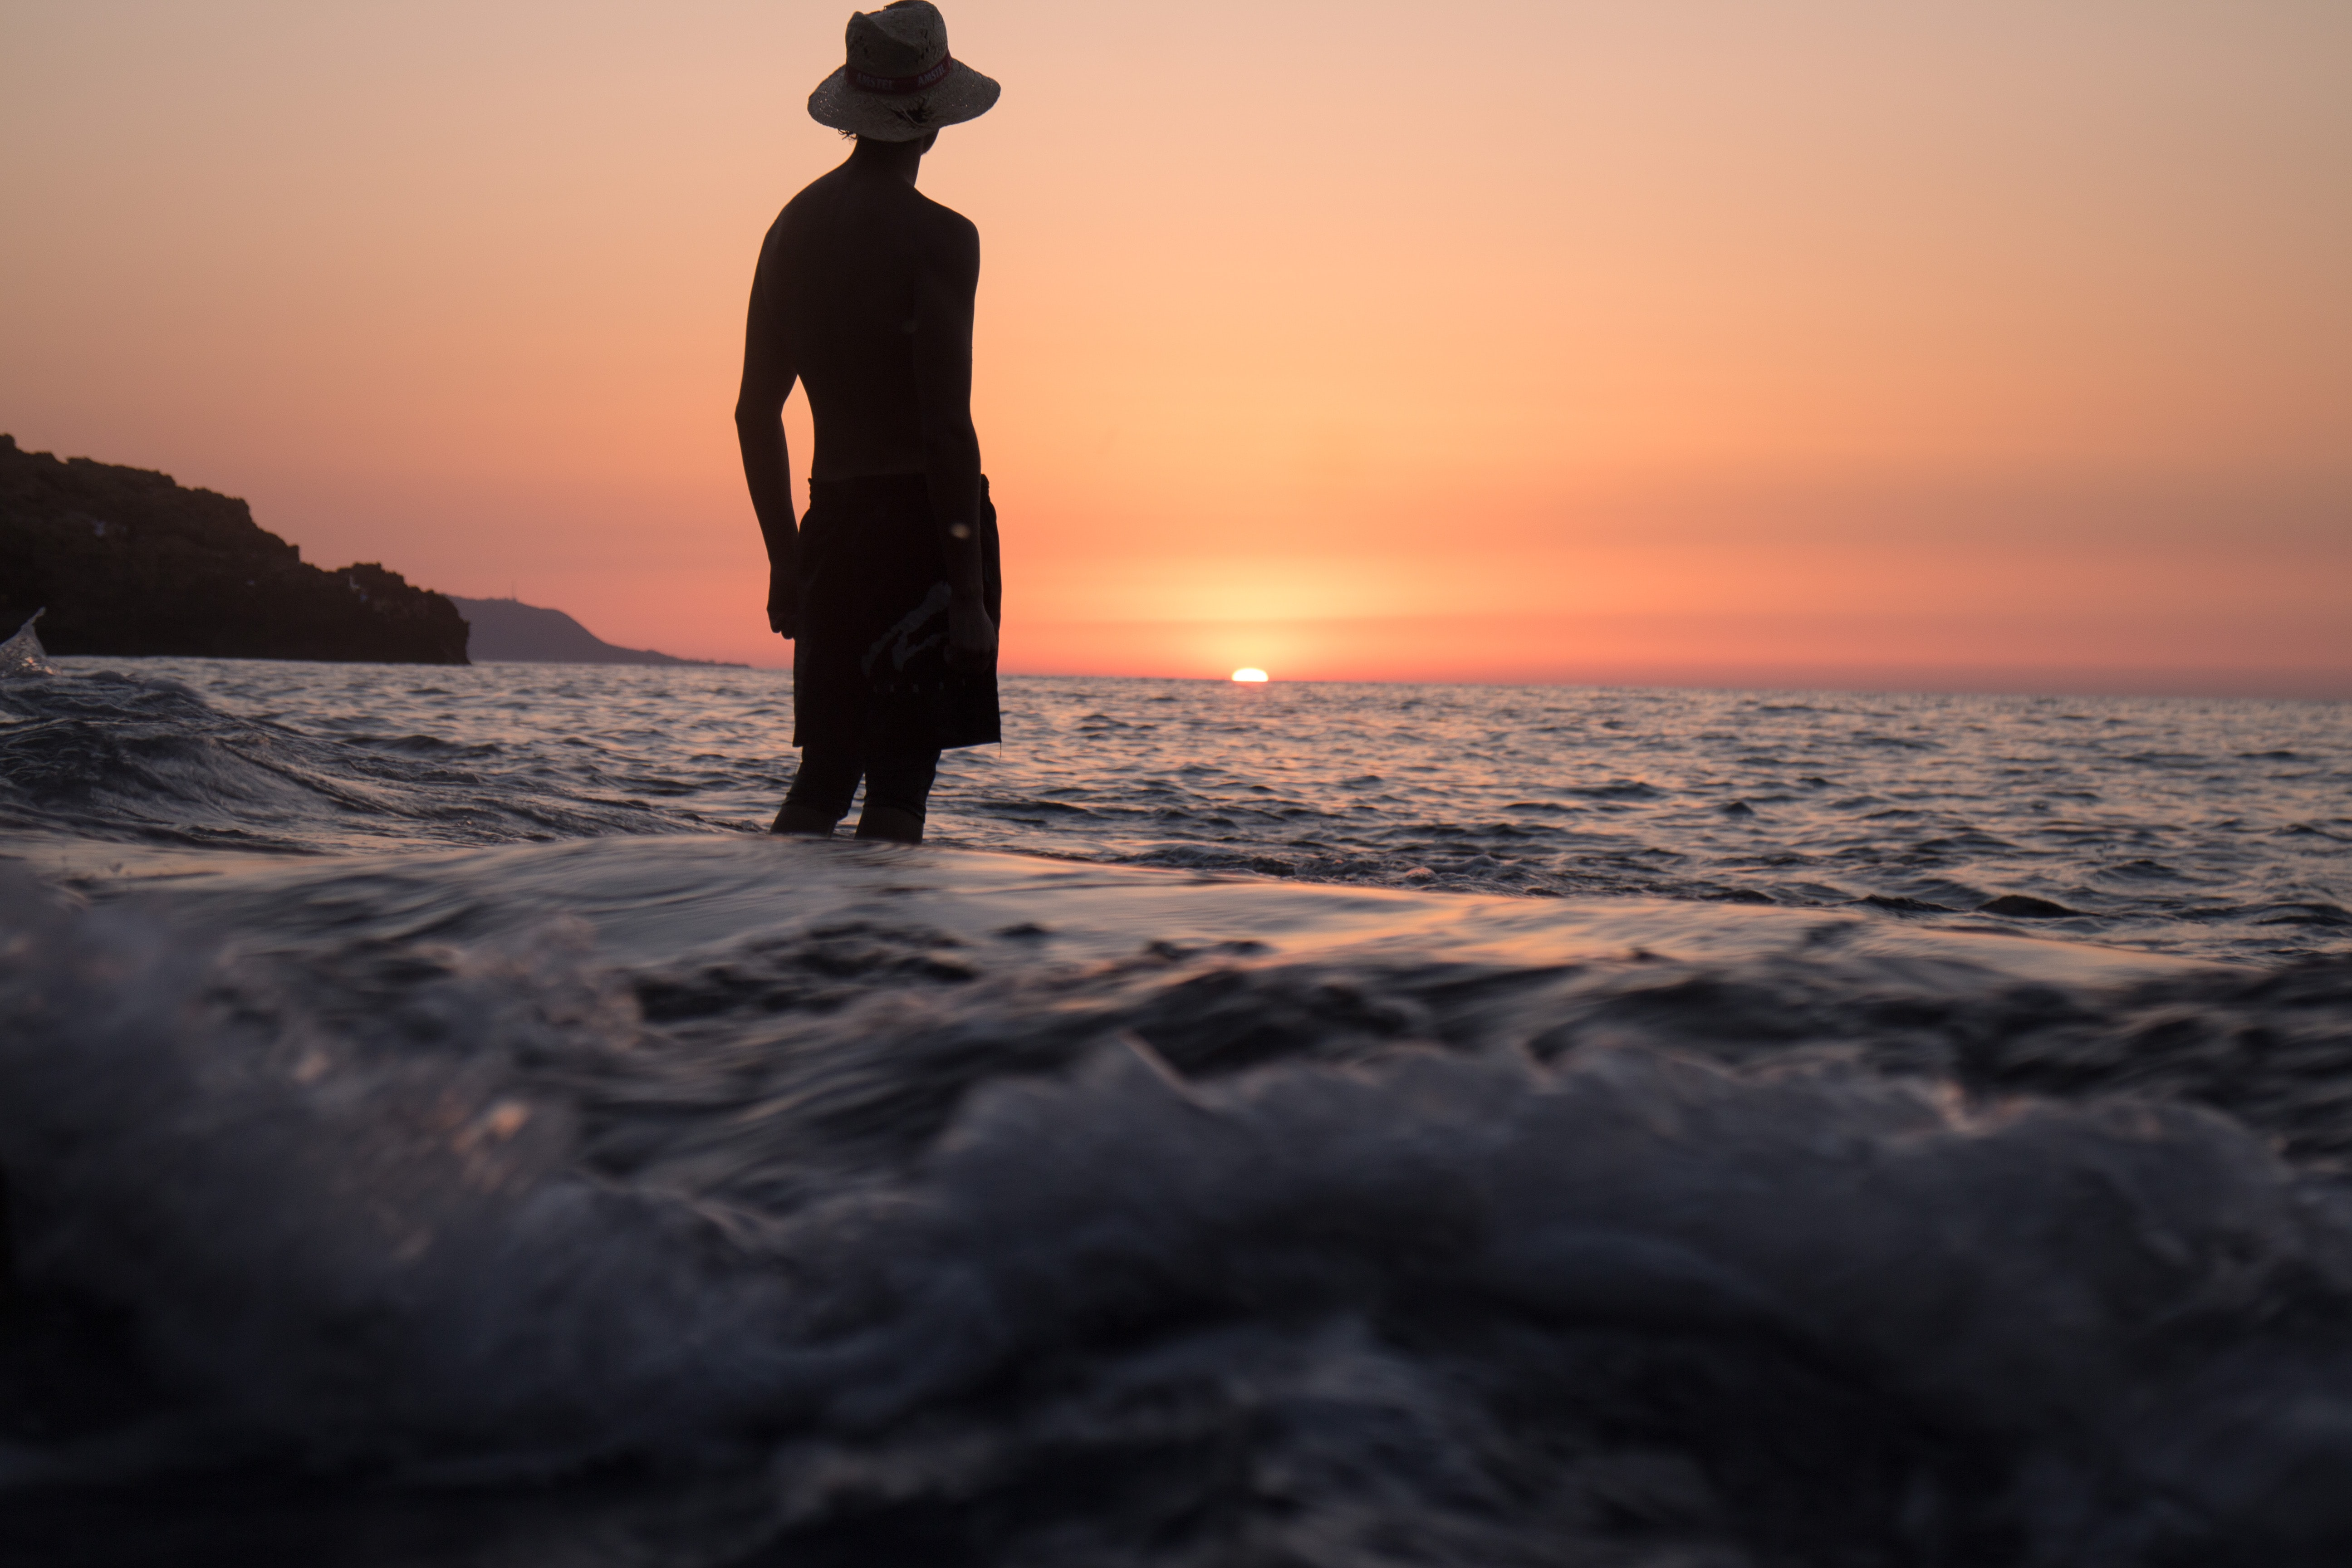 silhouette of person standing on shallow seashore facing sunset